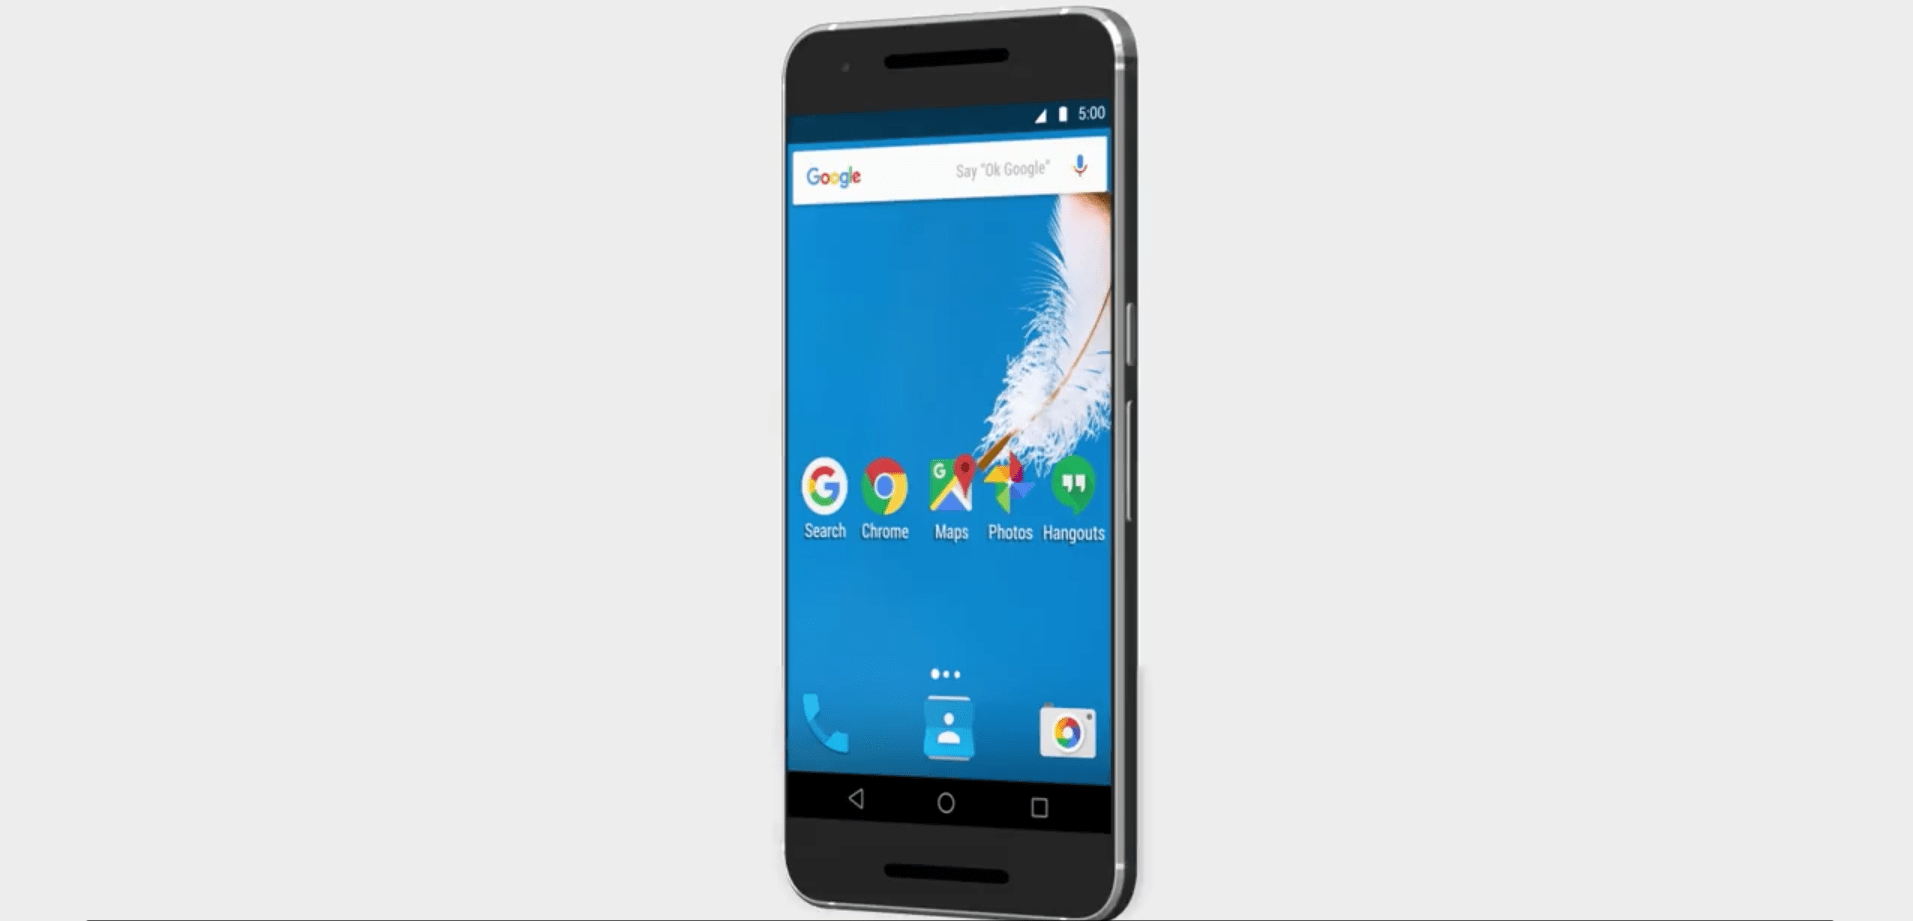 No App Drawer For Android N Hinted At In Google Tweet